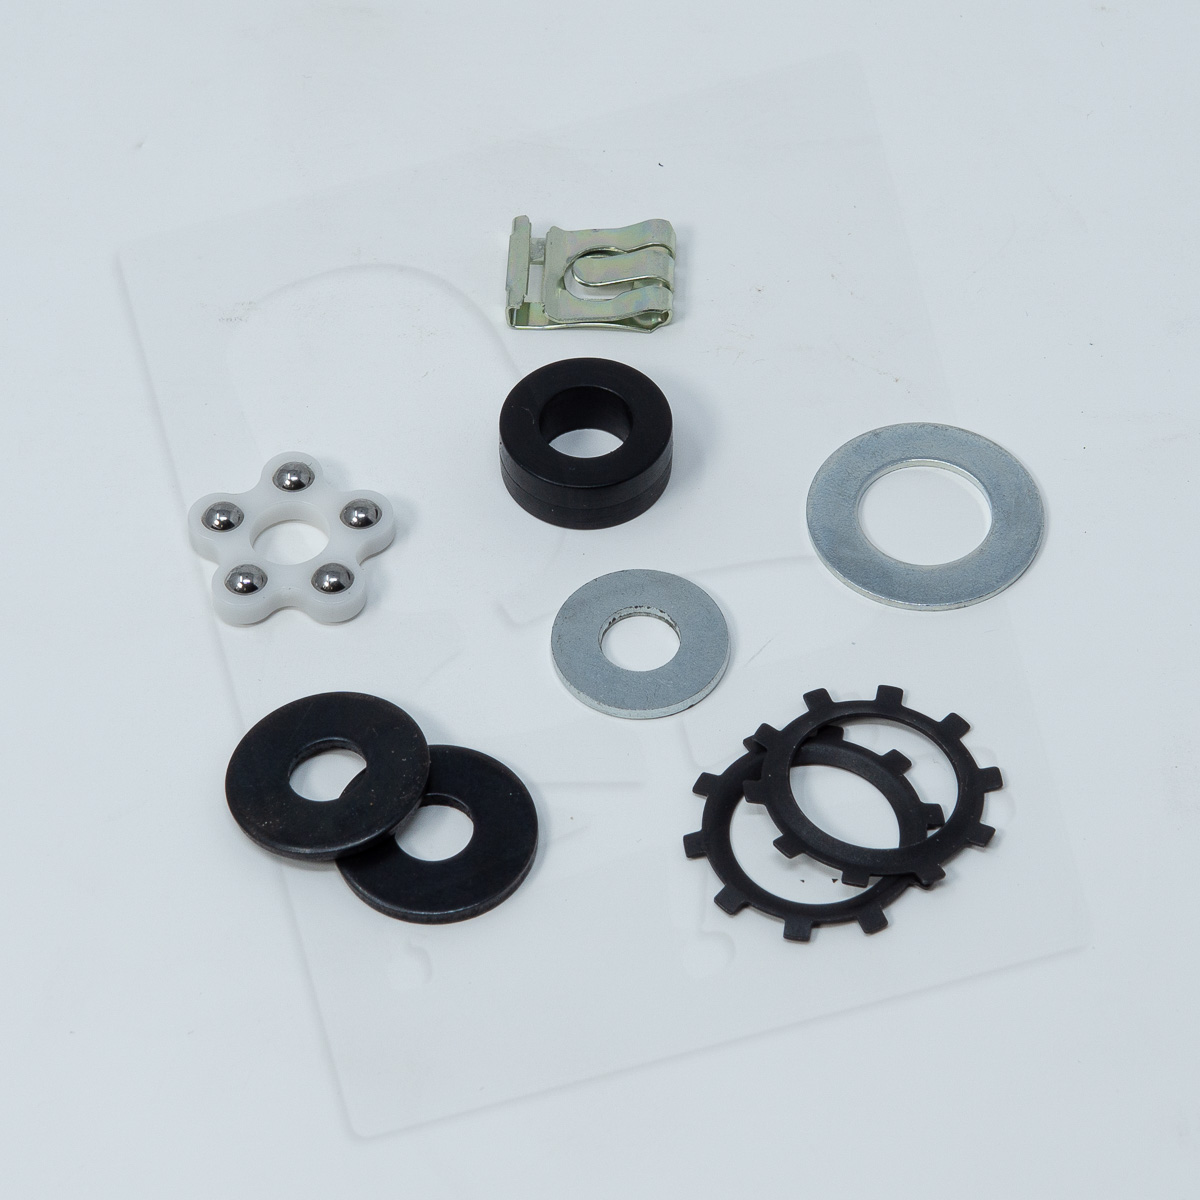 Crandall Office Furniture Aftermarket Office Chair Gas Cylinder Bearing Kit - Steelcase Lock Ring Style 0001